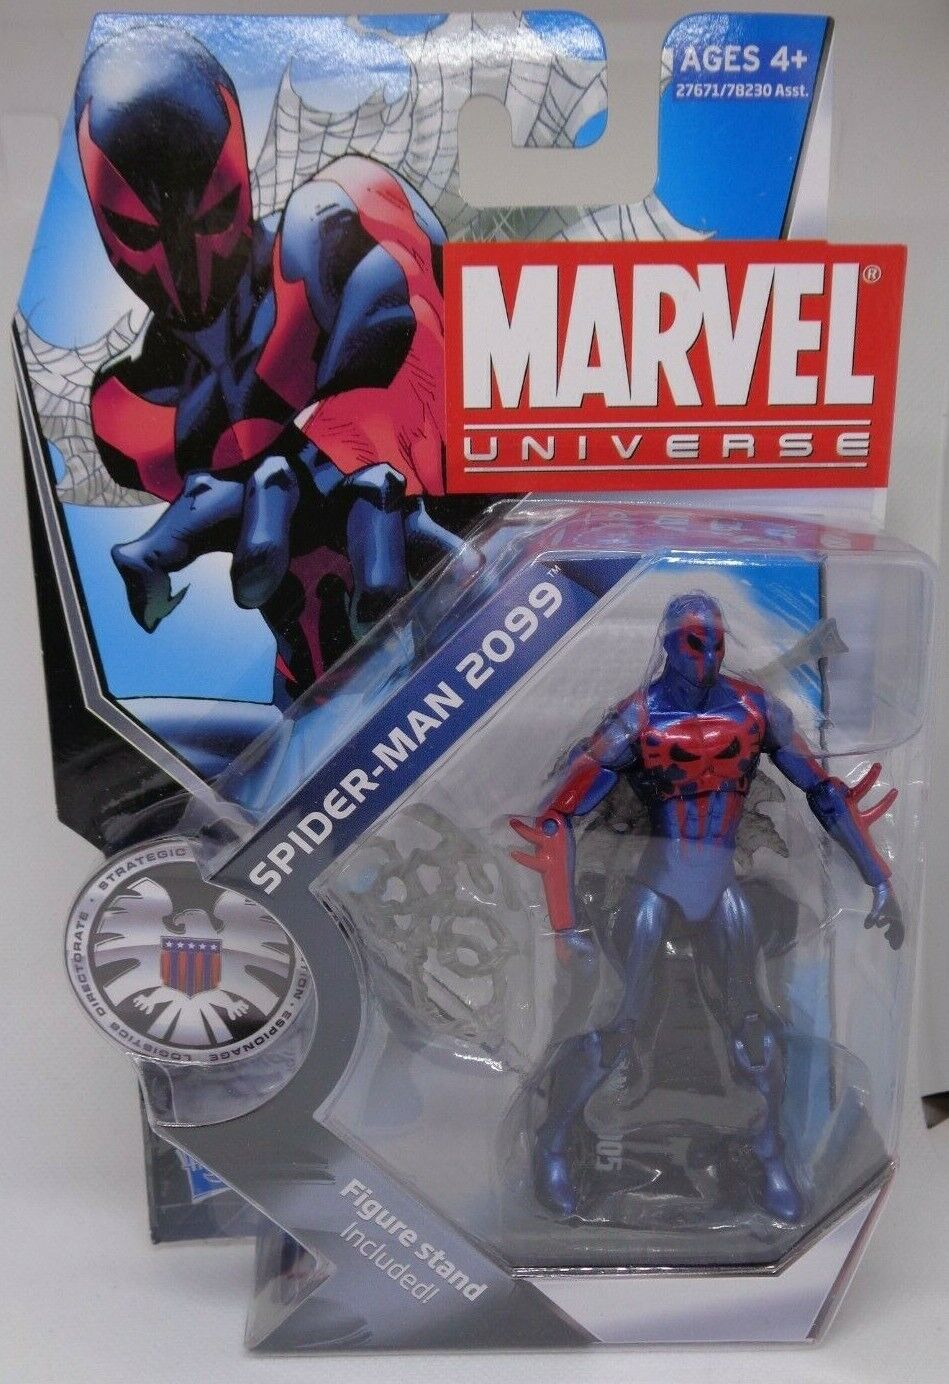 Marvel Legends Universe > Spider-Man 2099 3.75 in Action Fig